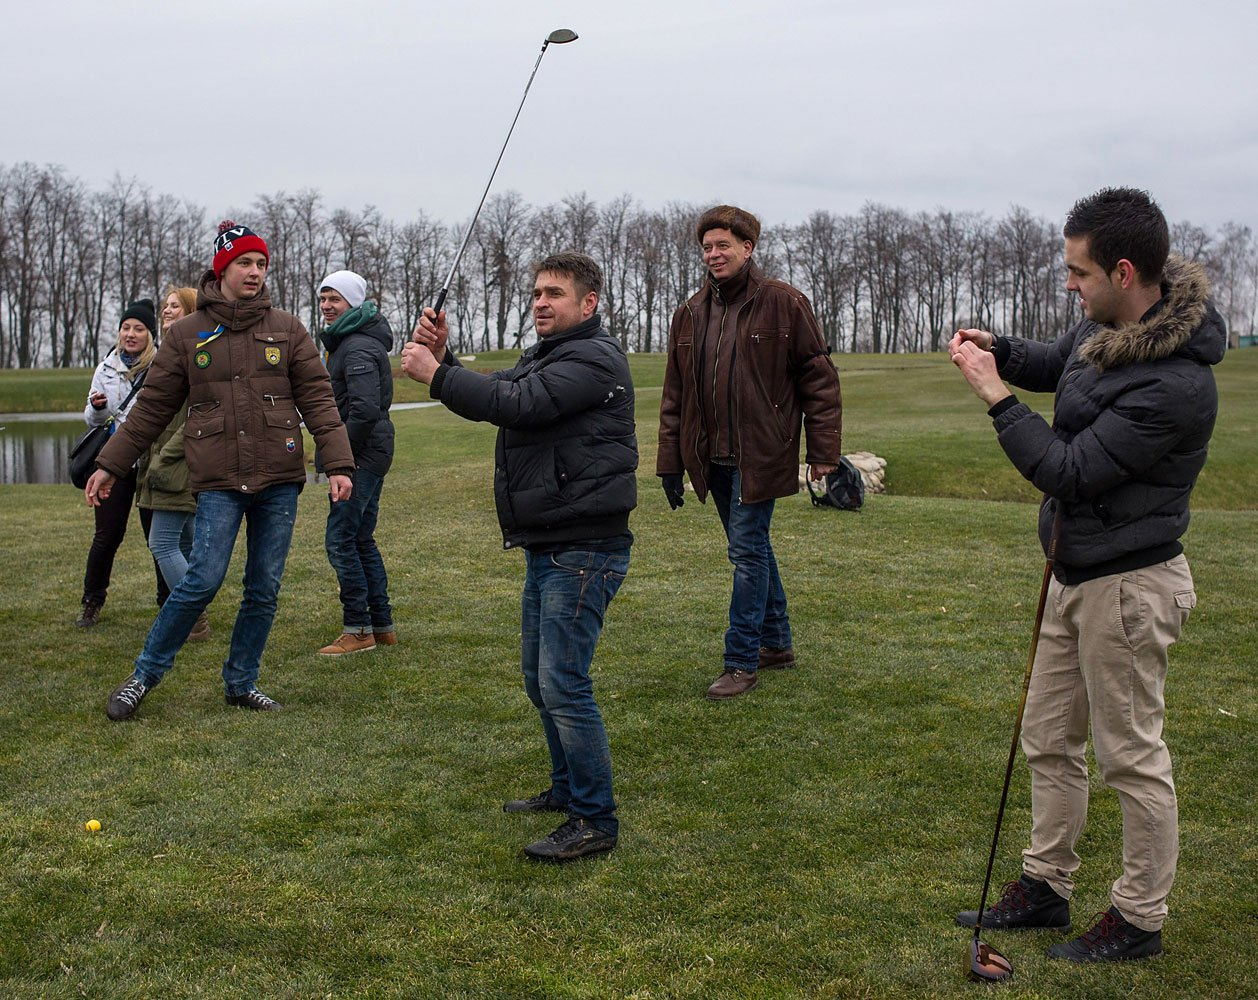 Protesters try to play on a golf course at the Ukrainian President Yanukovych's countryside residence.